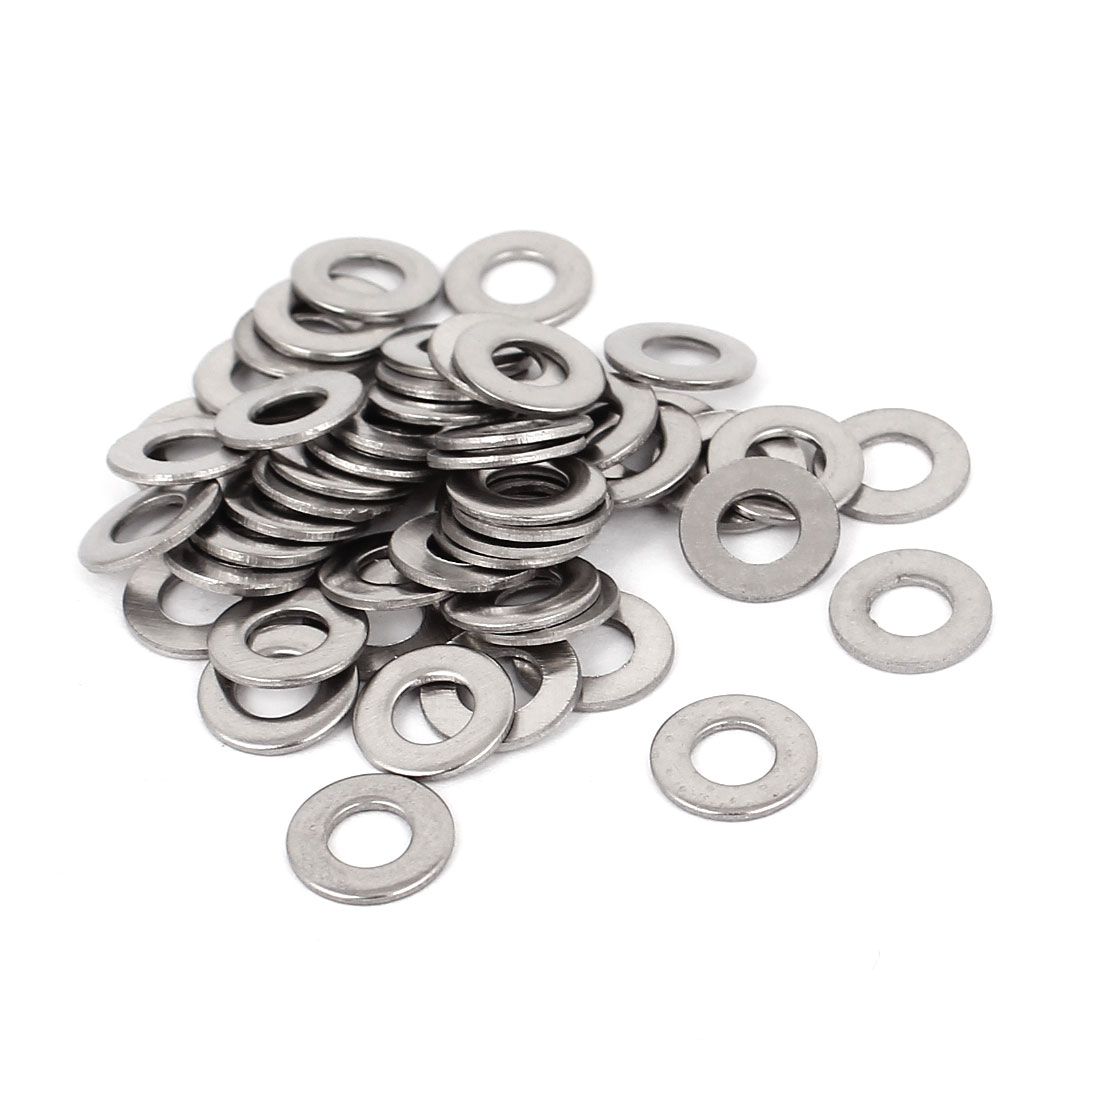 50pcs 304 Stainless Steel Flat Washer #8 Plain Spacer for Screws Bolts